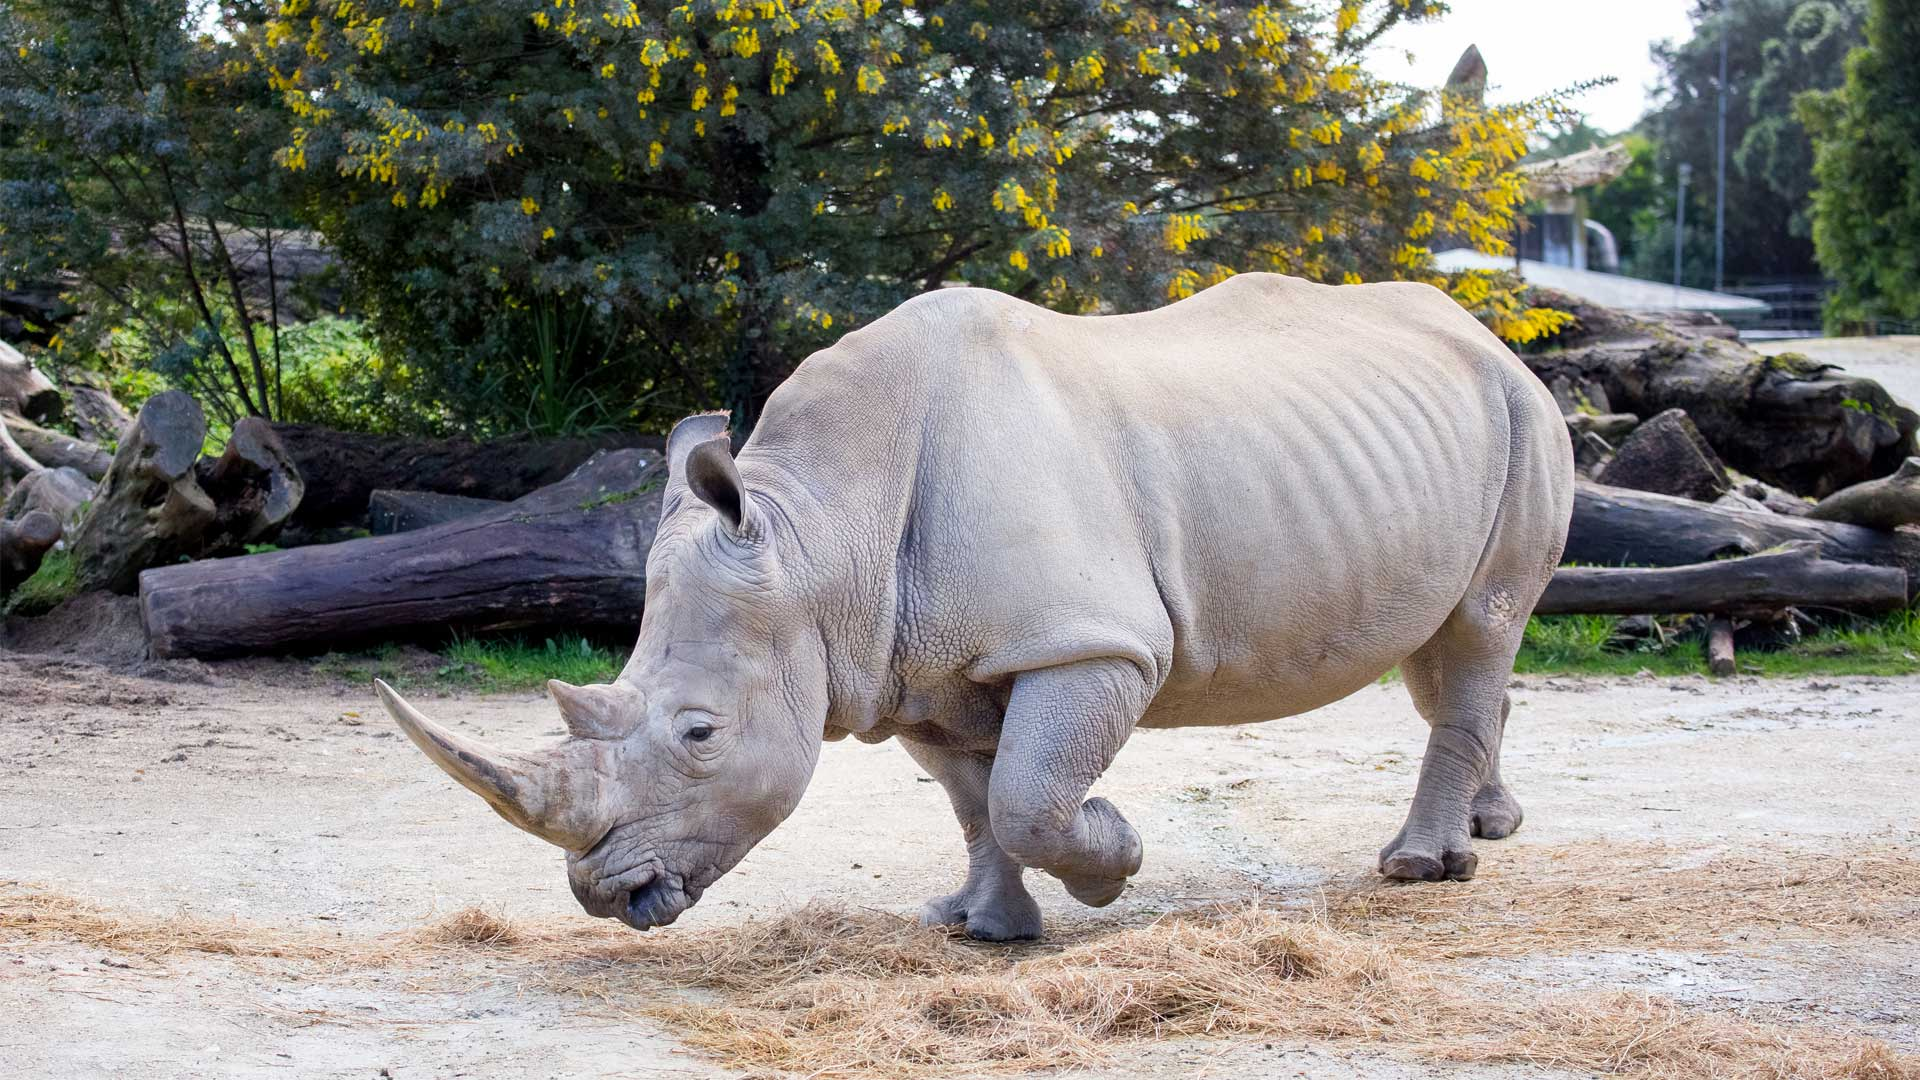 https://rfacdn.nz/zoo/assets/media/rhino-gallery-1.jpg